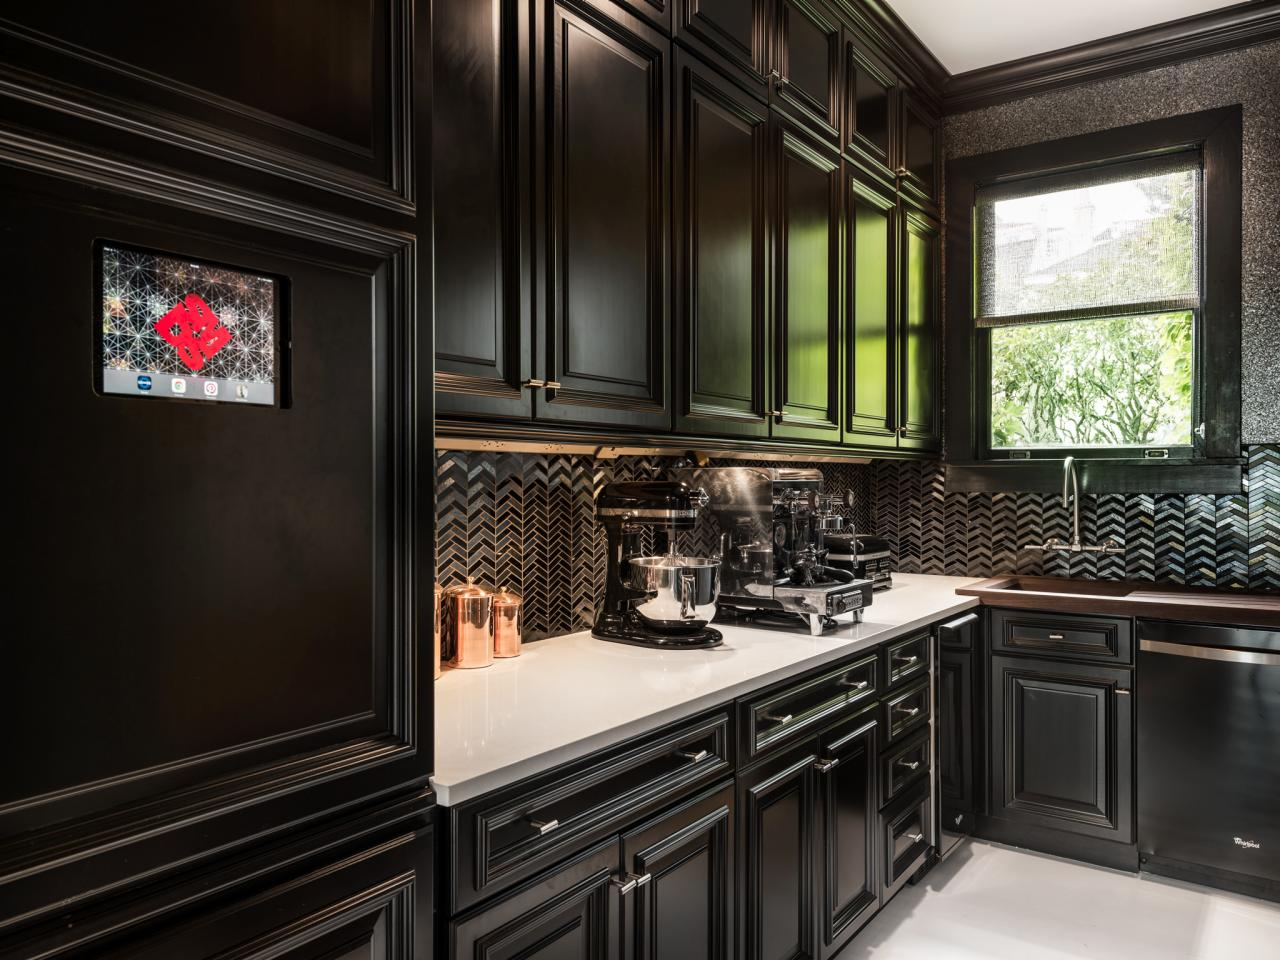 Kitchen Design Black Cabinets black kitchens are the new white | hgtv's decorating & design blog